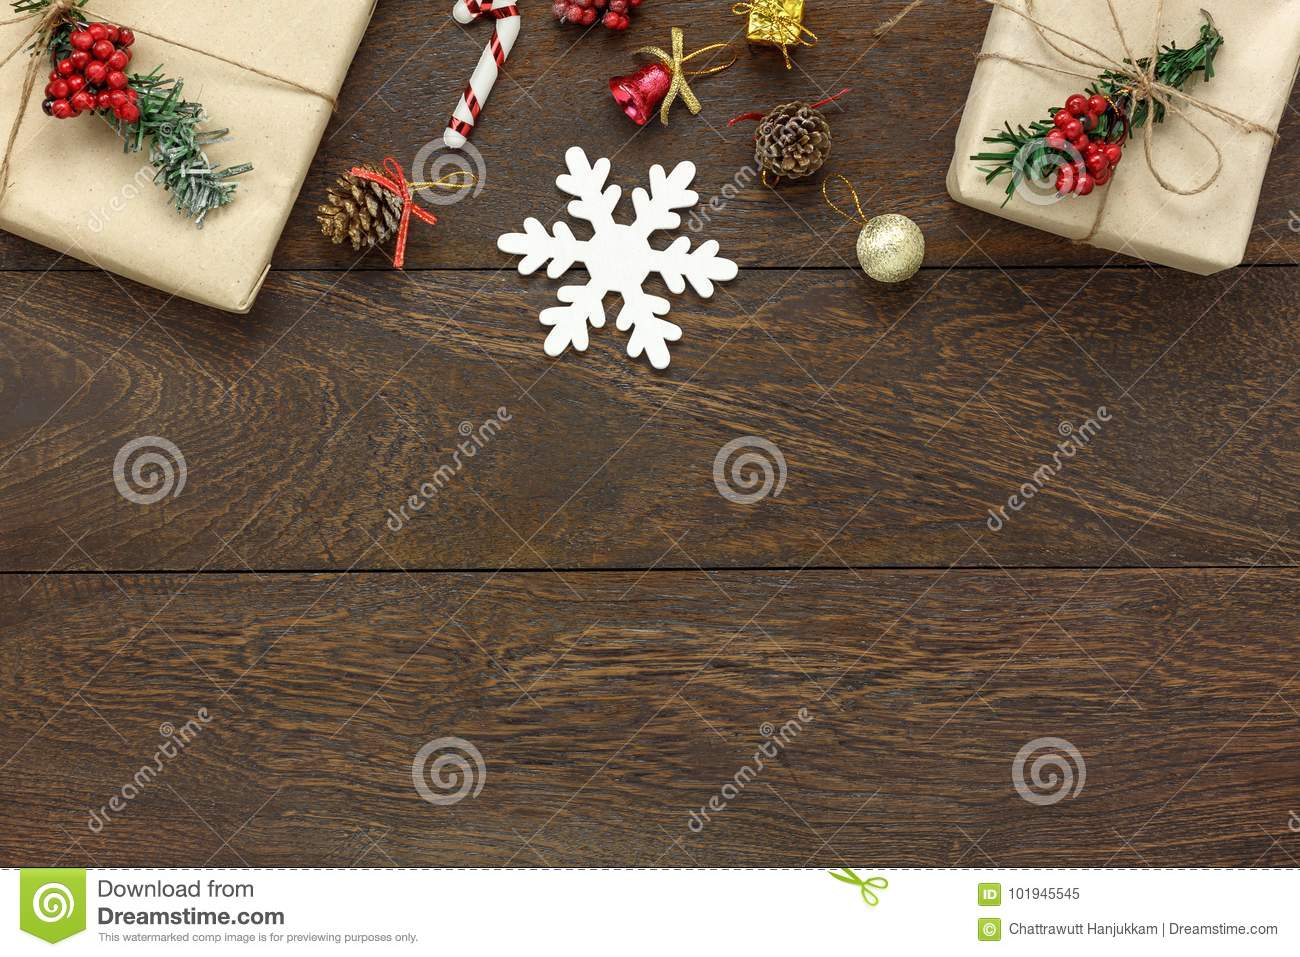 table top view of the merry christmas happy new year concept background essential festive decorations on modern brown woodcopy space for creative text or